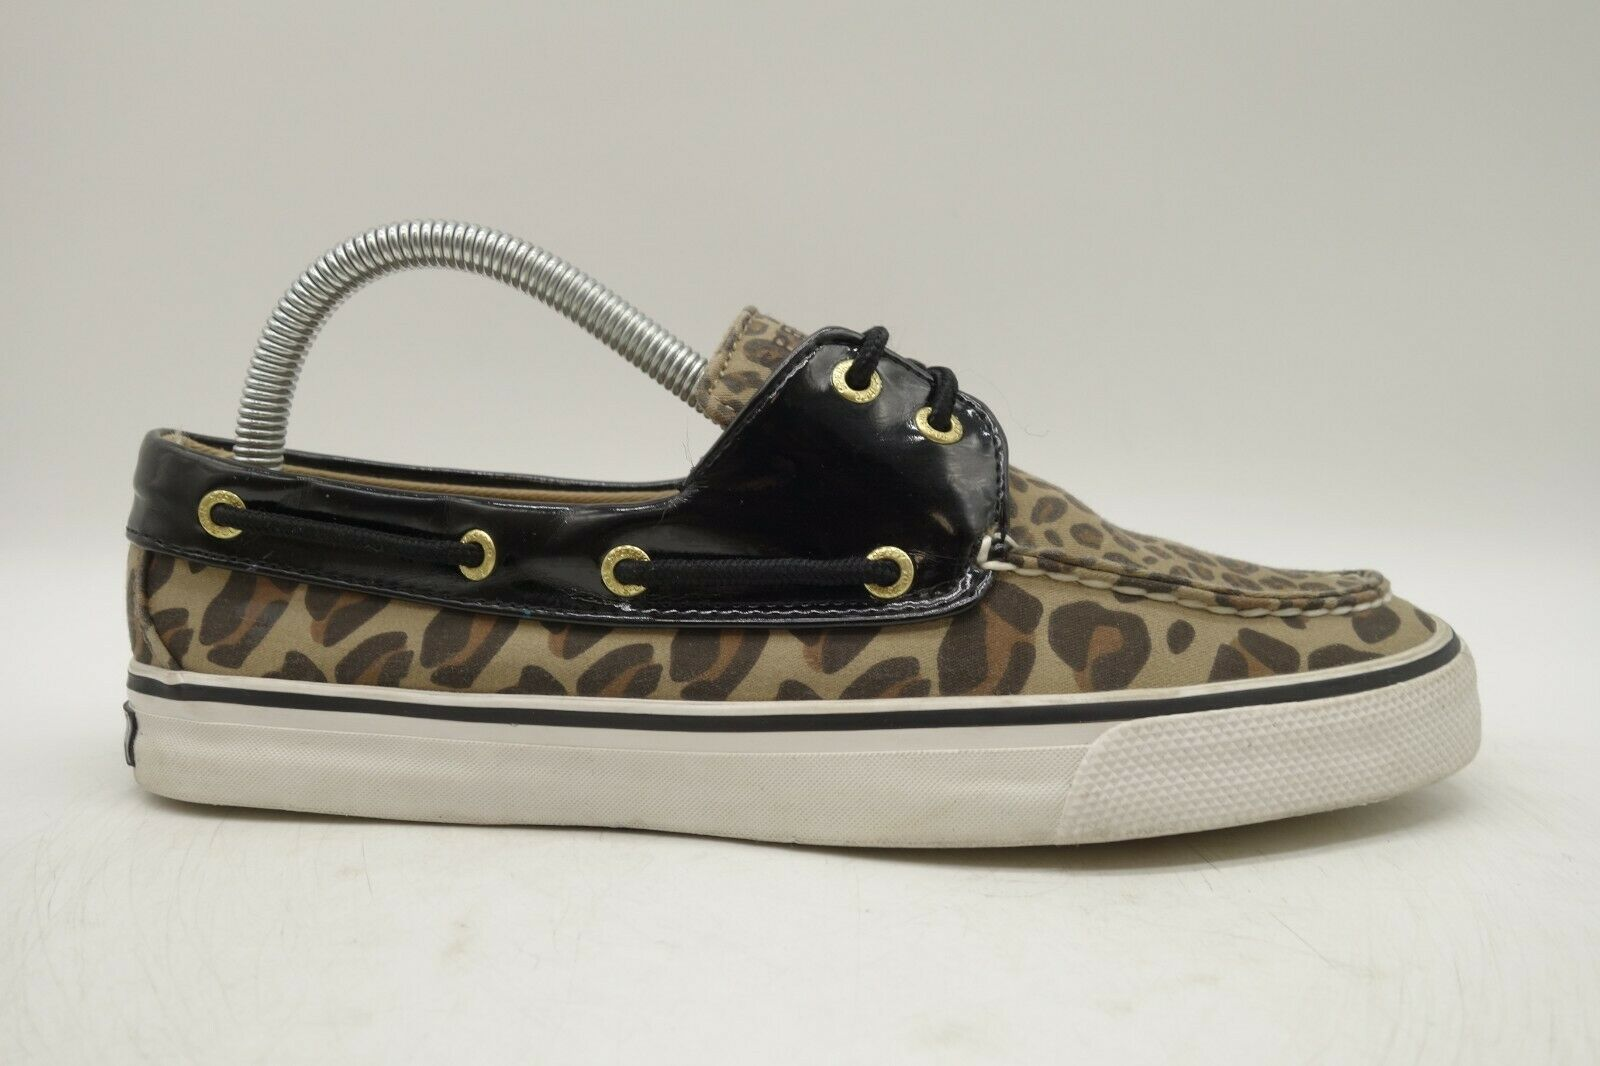 Sperry Top Sider Brown Leopard Print Canvas Deck Boat Loafers Shoes Women's 8 M